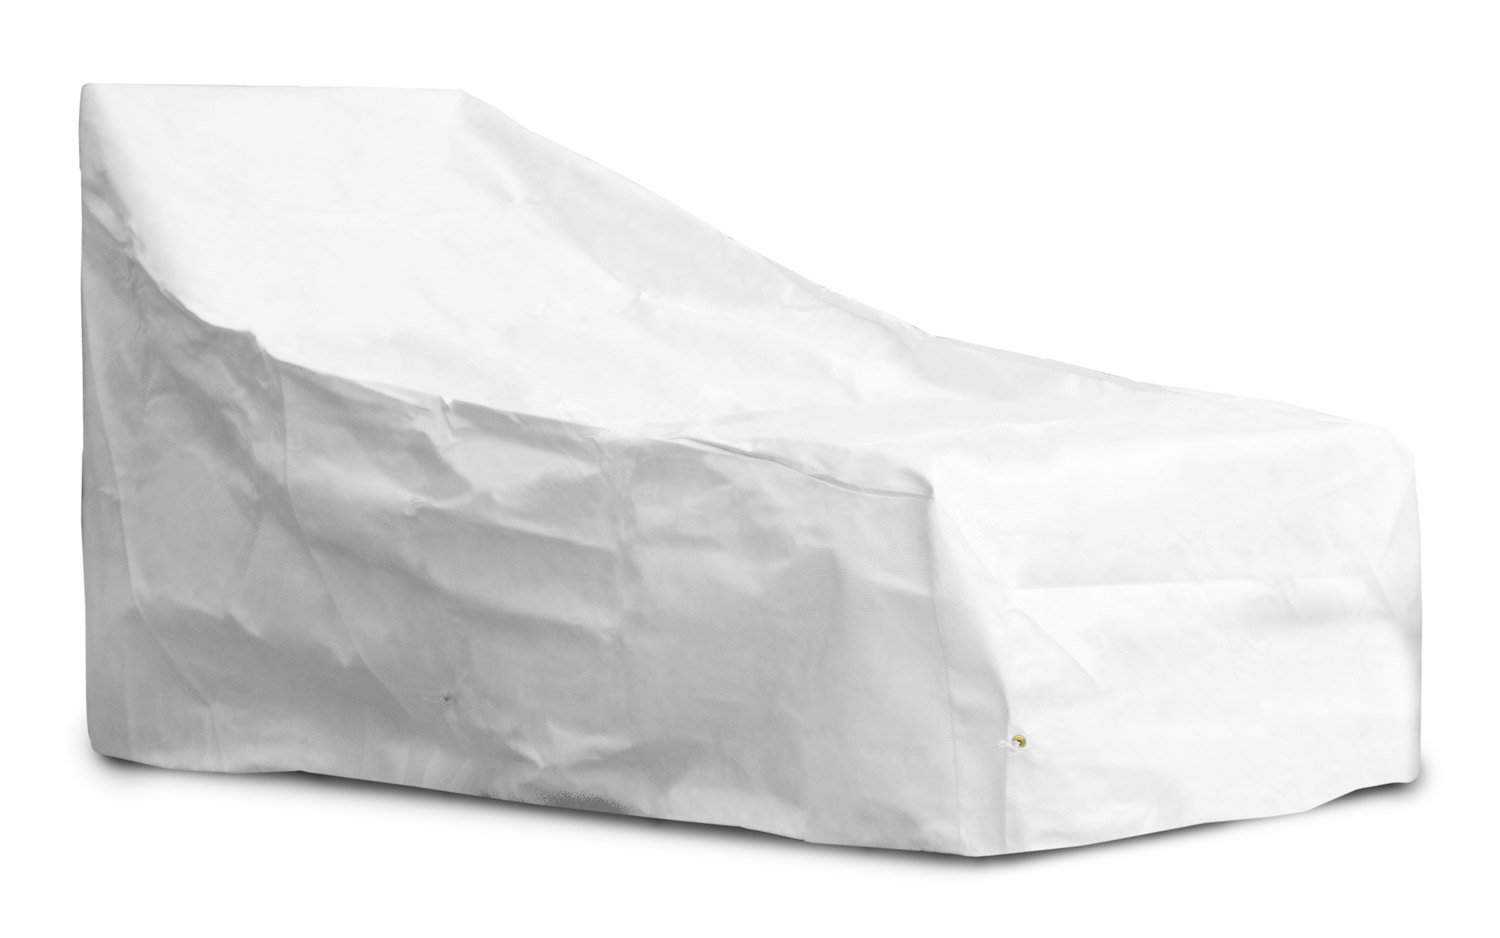 KoverRoos SupraRoos 59825 Chaise Cover, 80 by 31 by 35-Inch, White